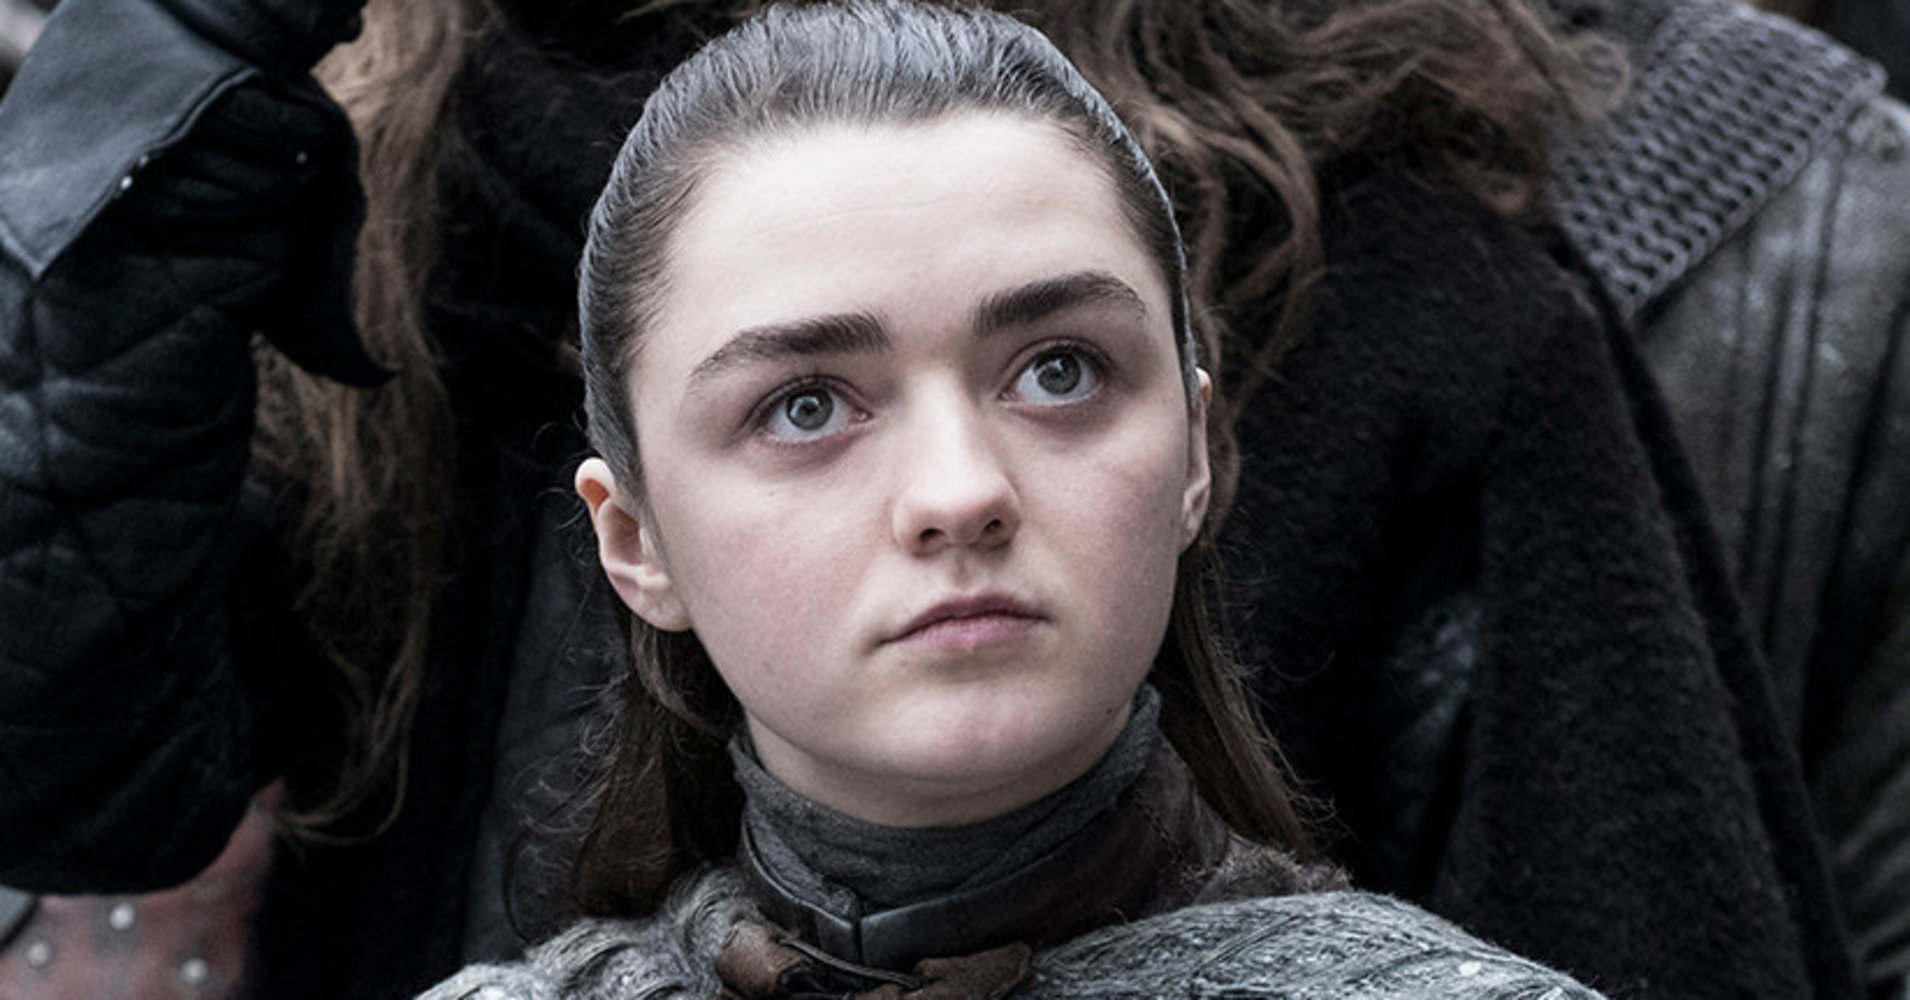 Everything You Need To Know About The 'Game Of Thrones' Dead Ned Theory